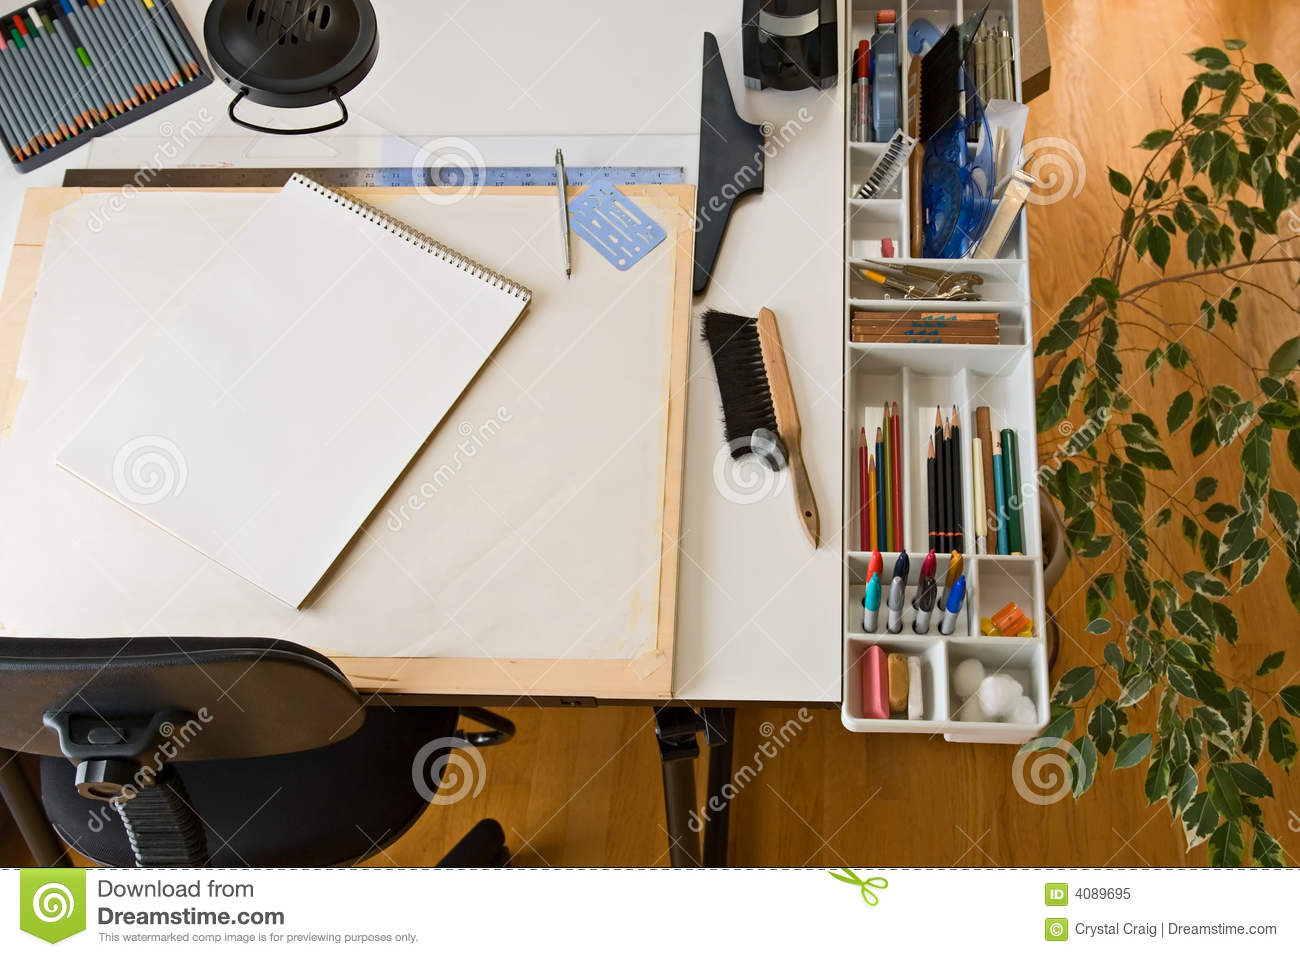 artist designer drafting drawing graphic supplies table